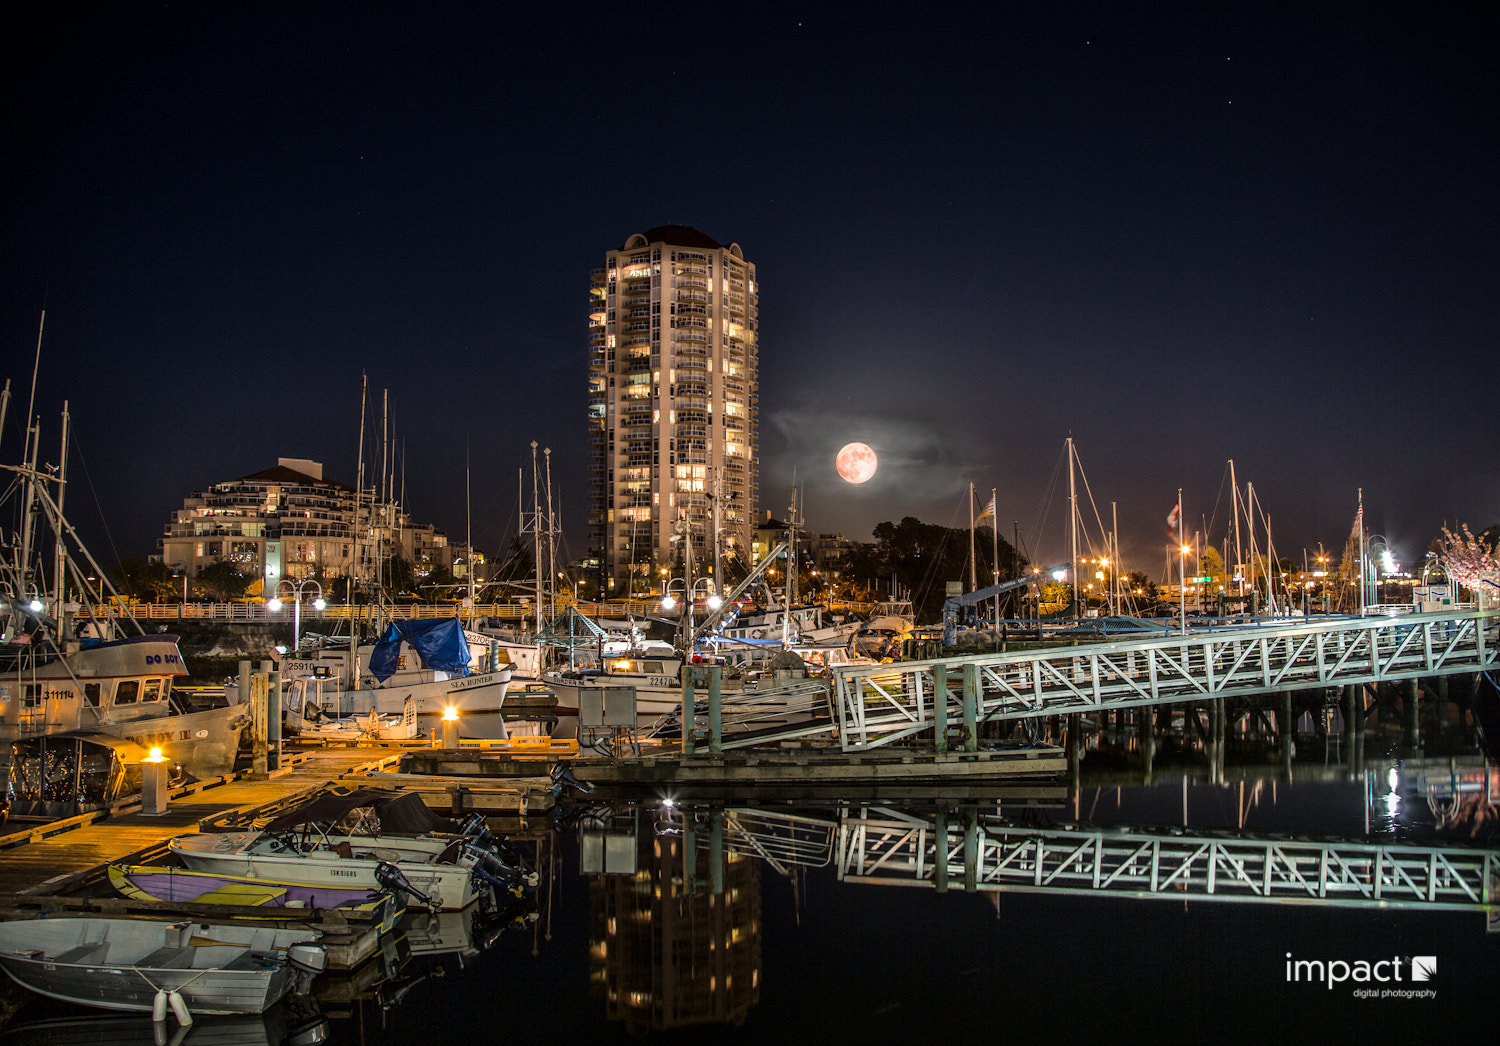 Photograph Harbour Moon in Nanaimo by Mike Thompson on 500px